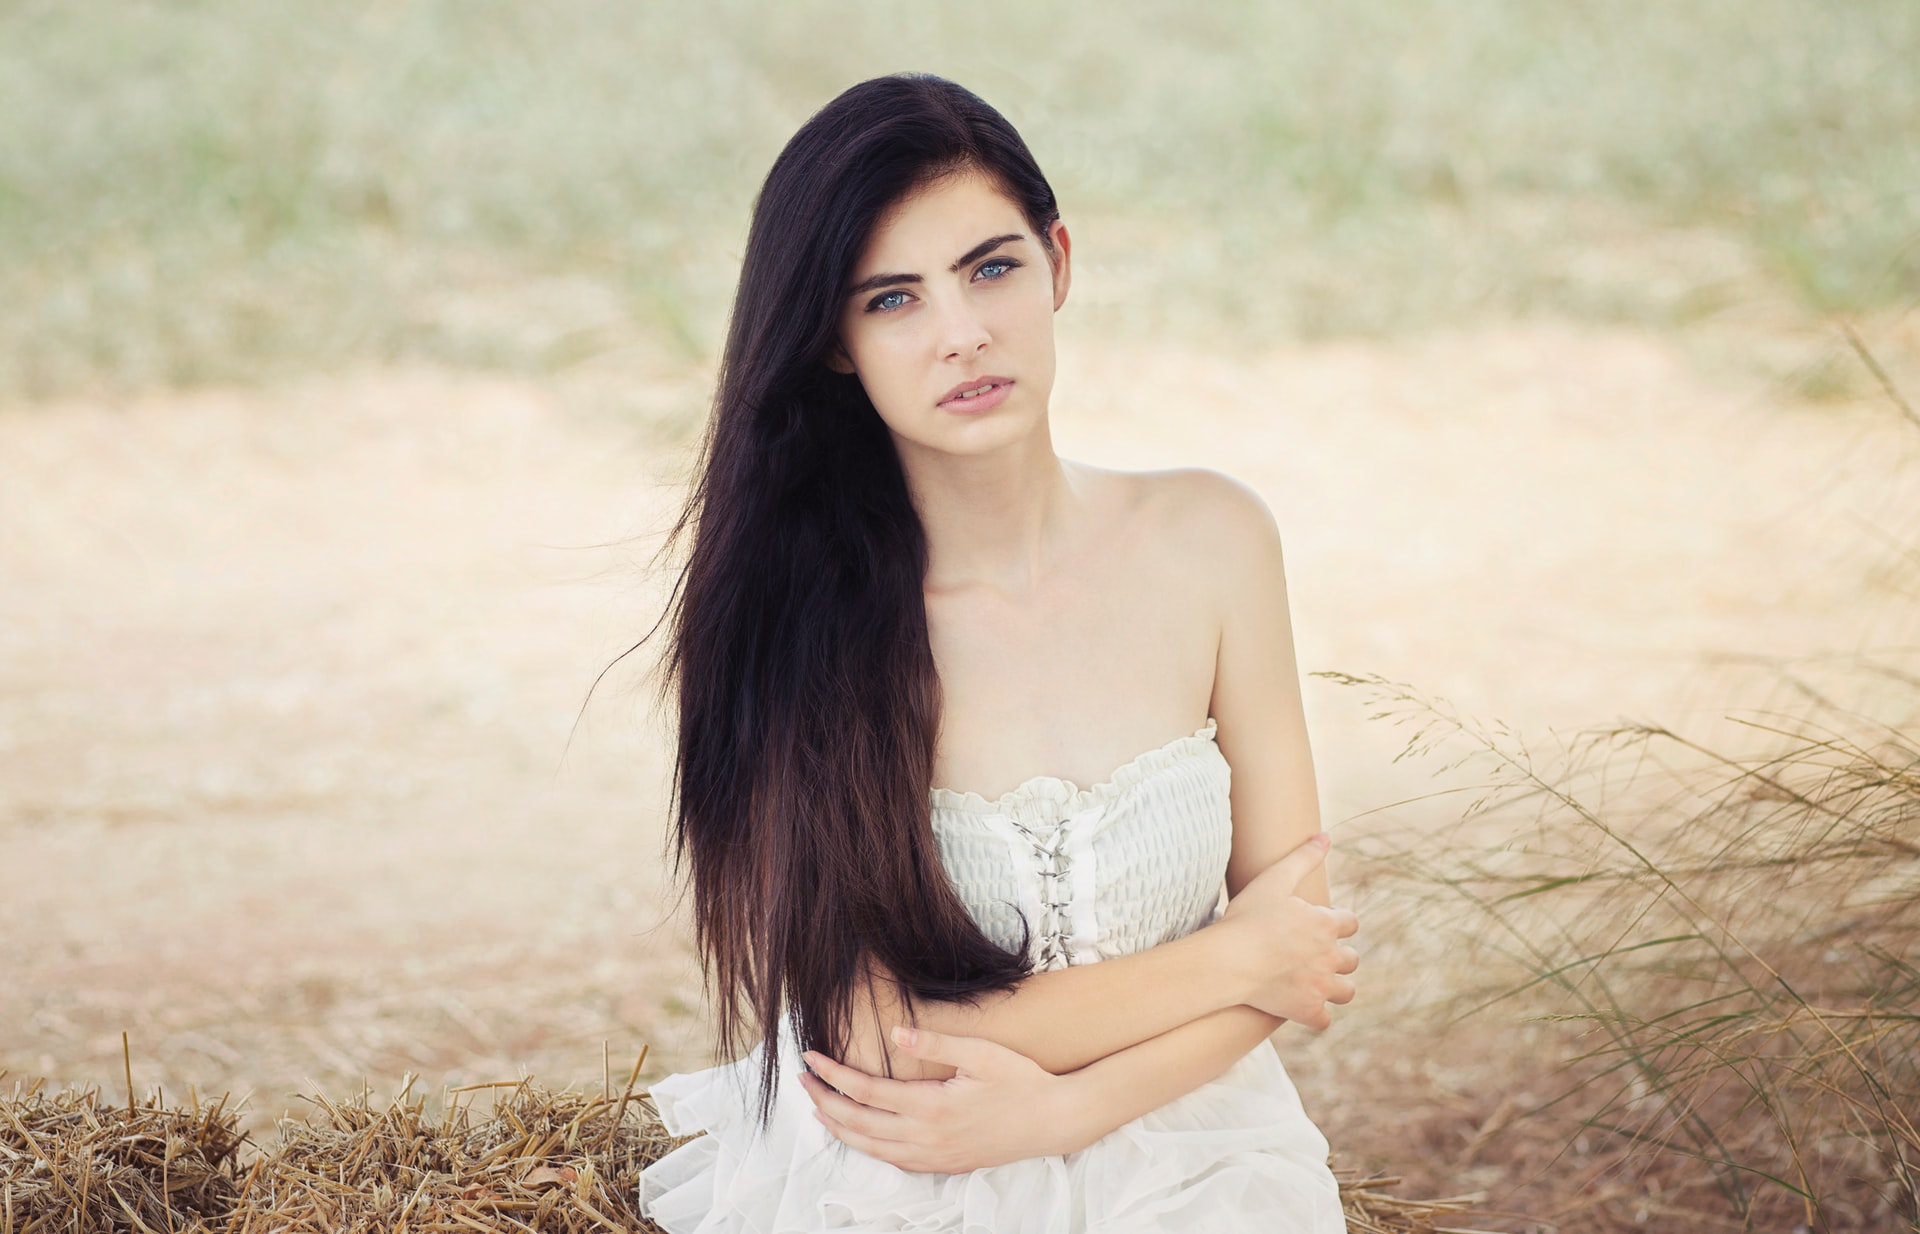 graceful European brunette girl